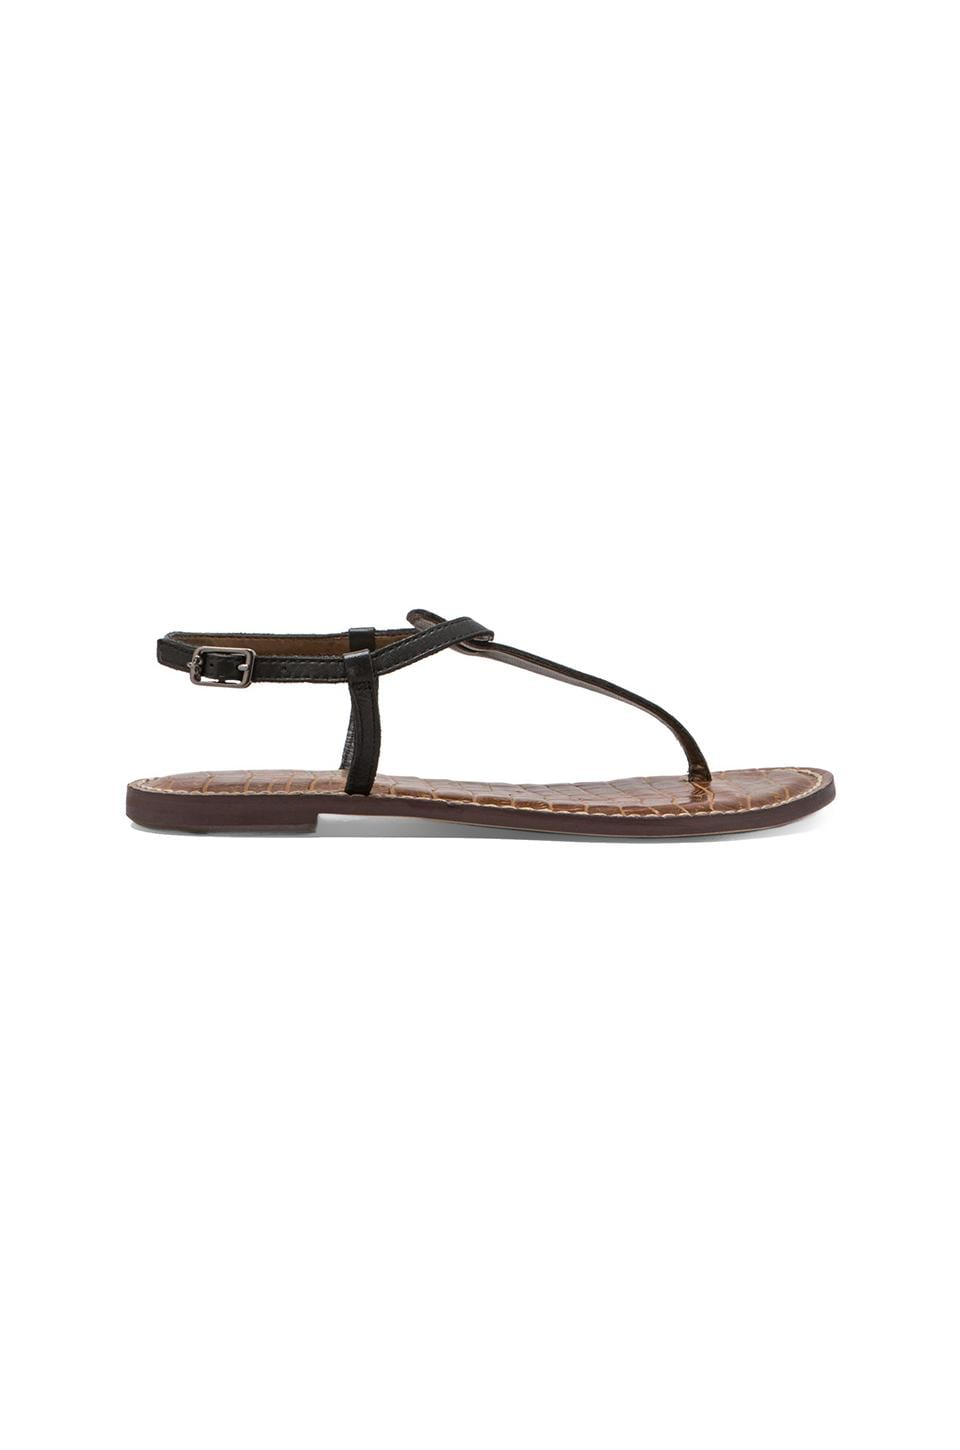 Sam Edelman Gigi Sandal in Black